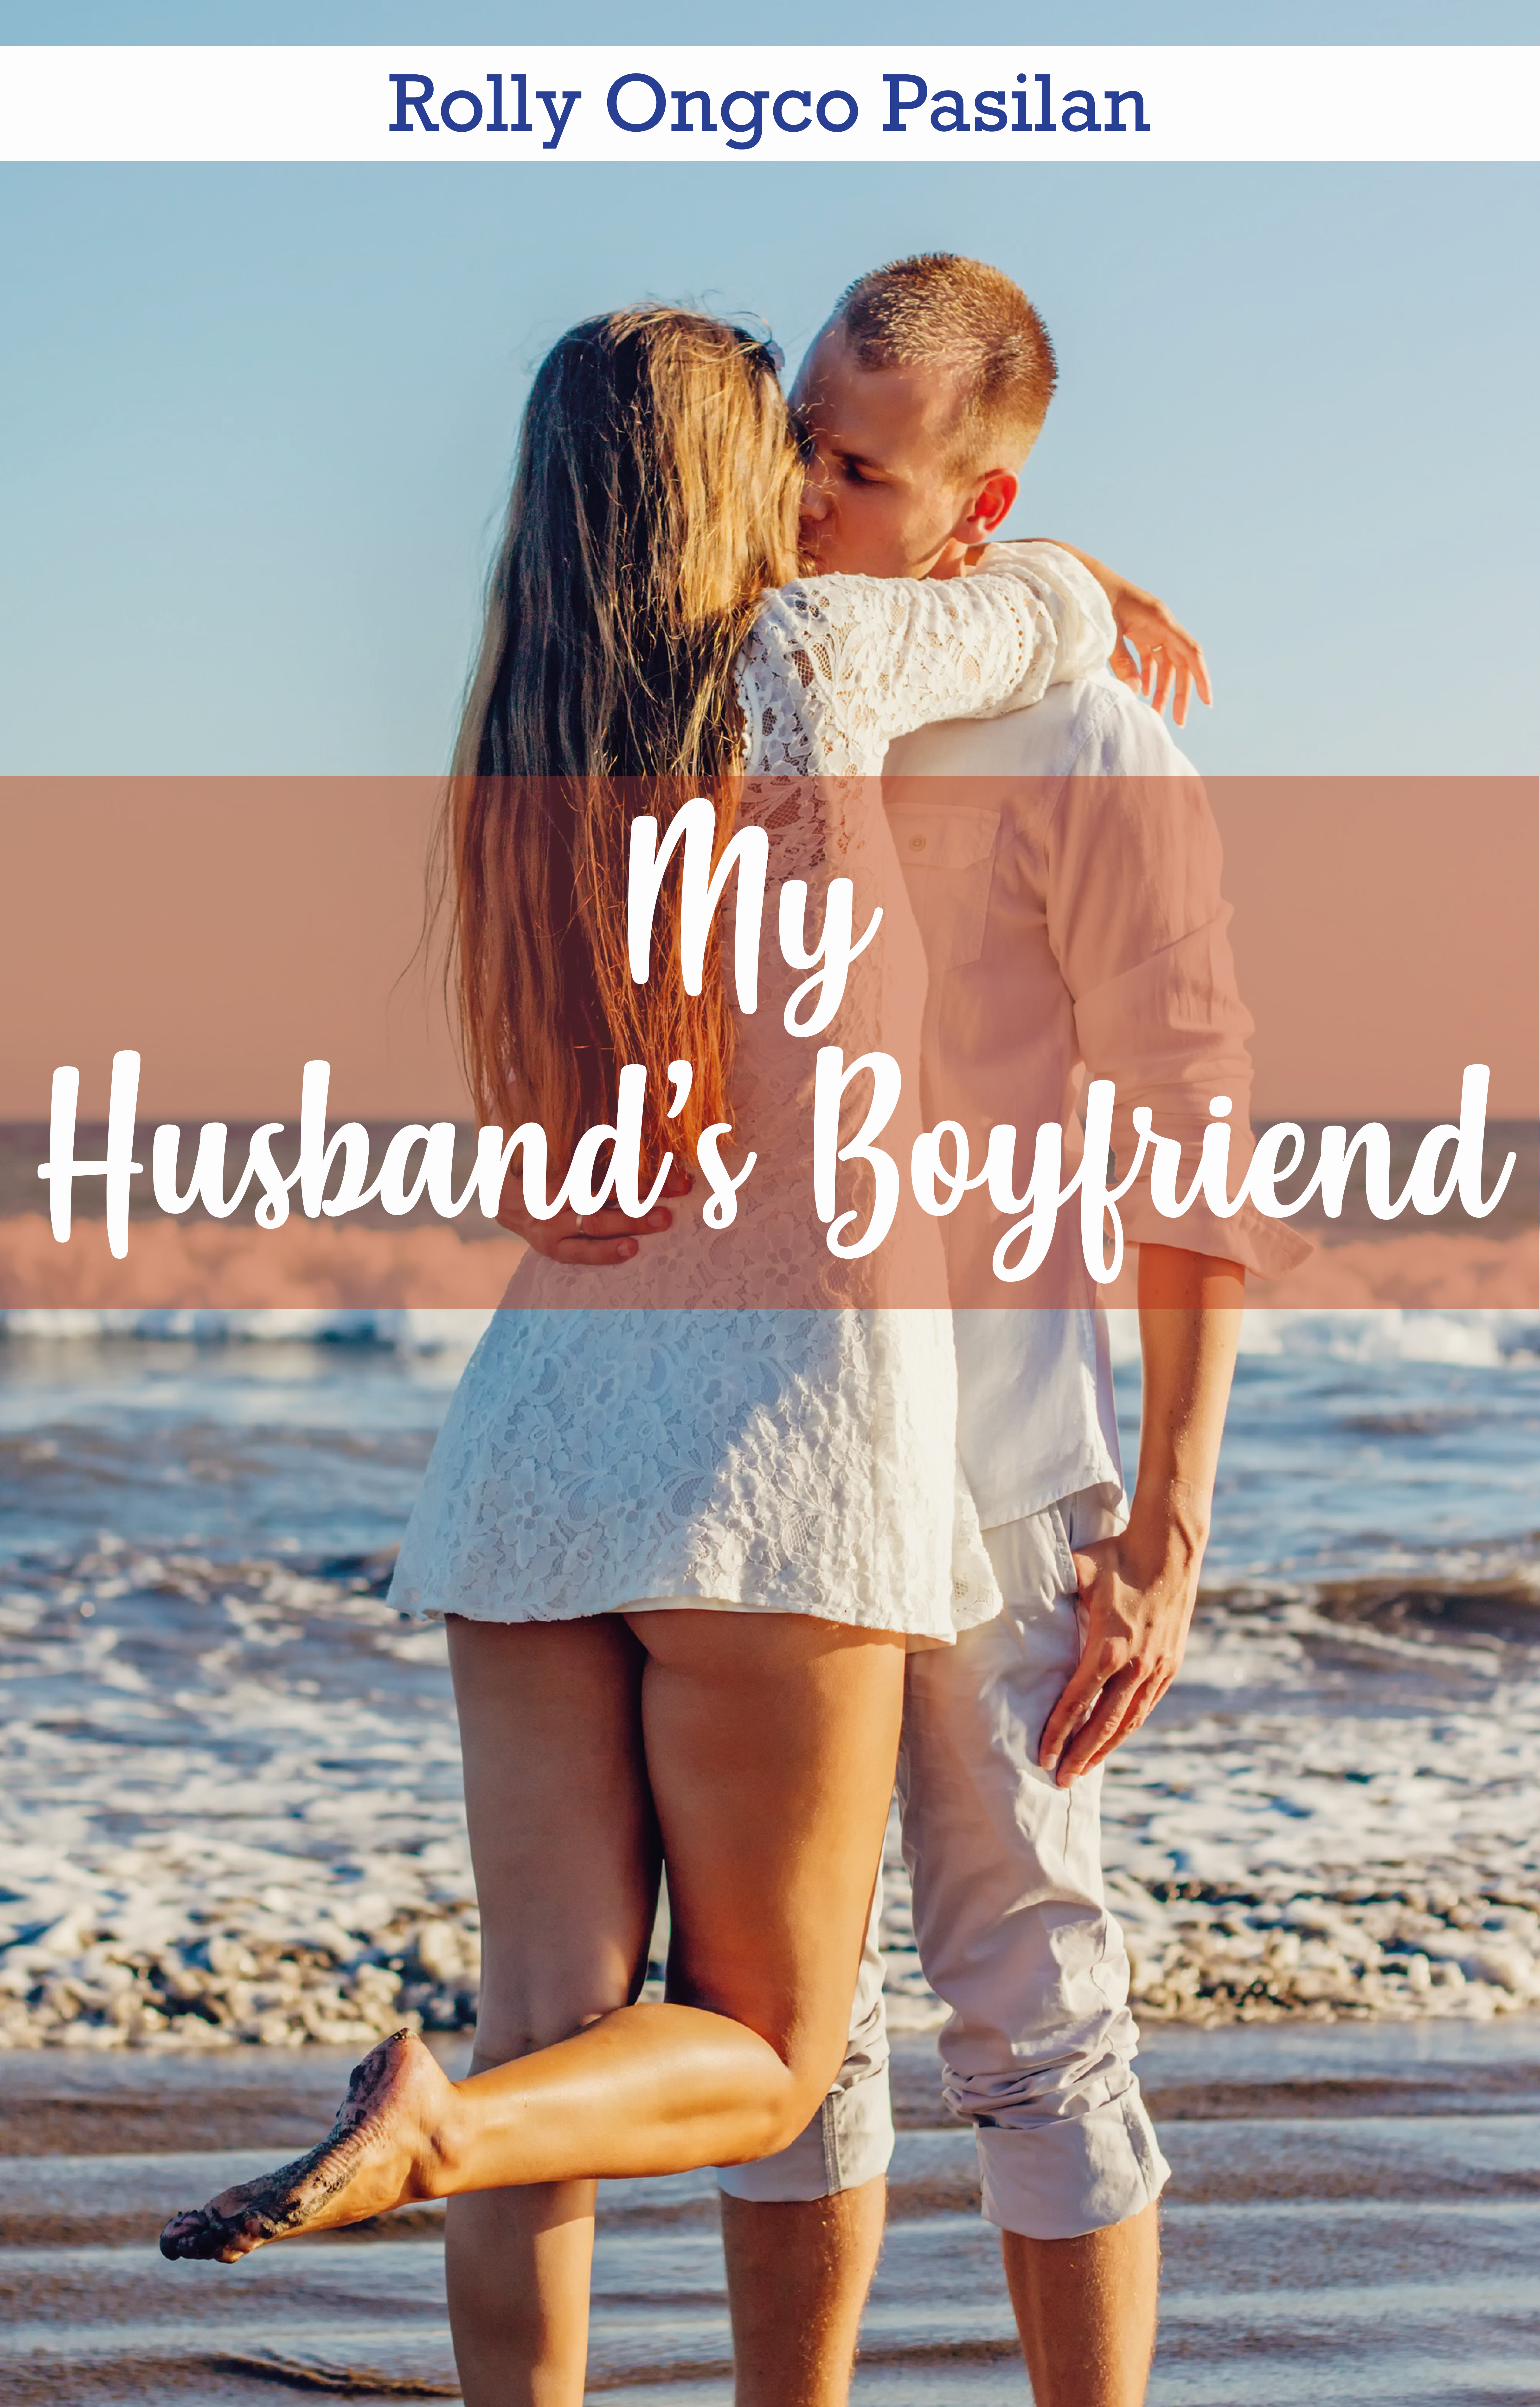 My Husband's Boyfriend, an Ebook by Rolly Ongco Pasilan